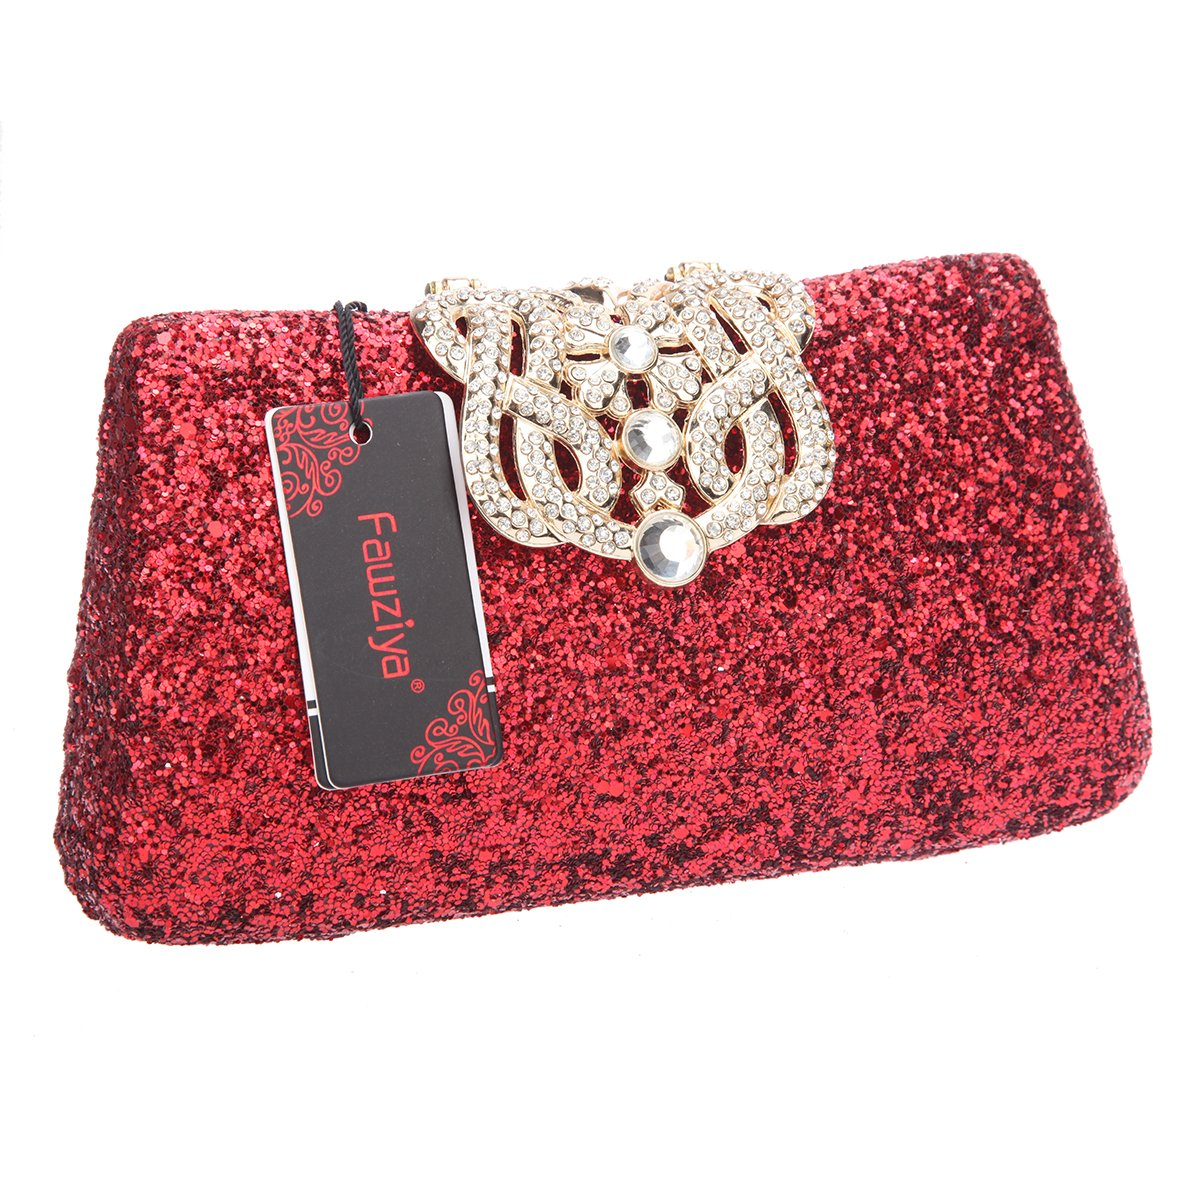 0bcb6f47a Amazon.com: Fawziya Crown Glitter Clutches And Evening Bags Bling Clutch  Purses For Women-Red: Shoes